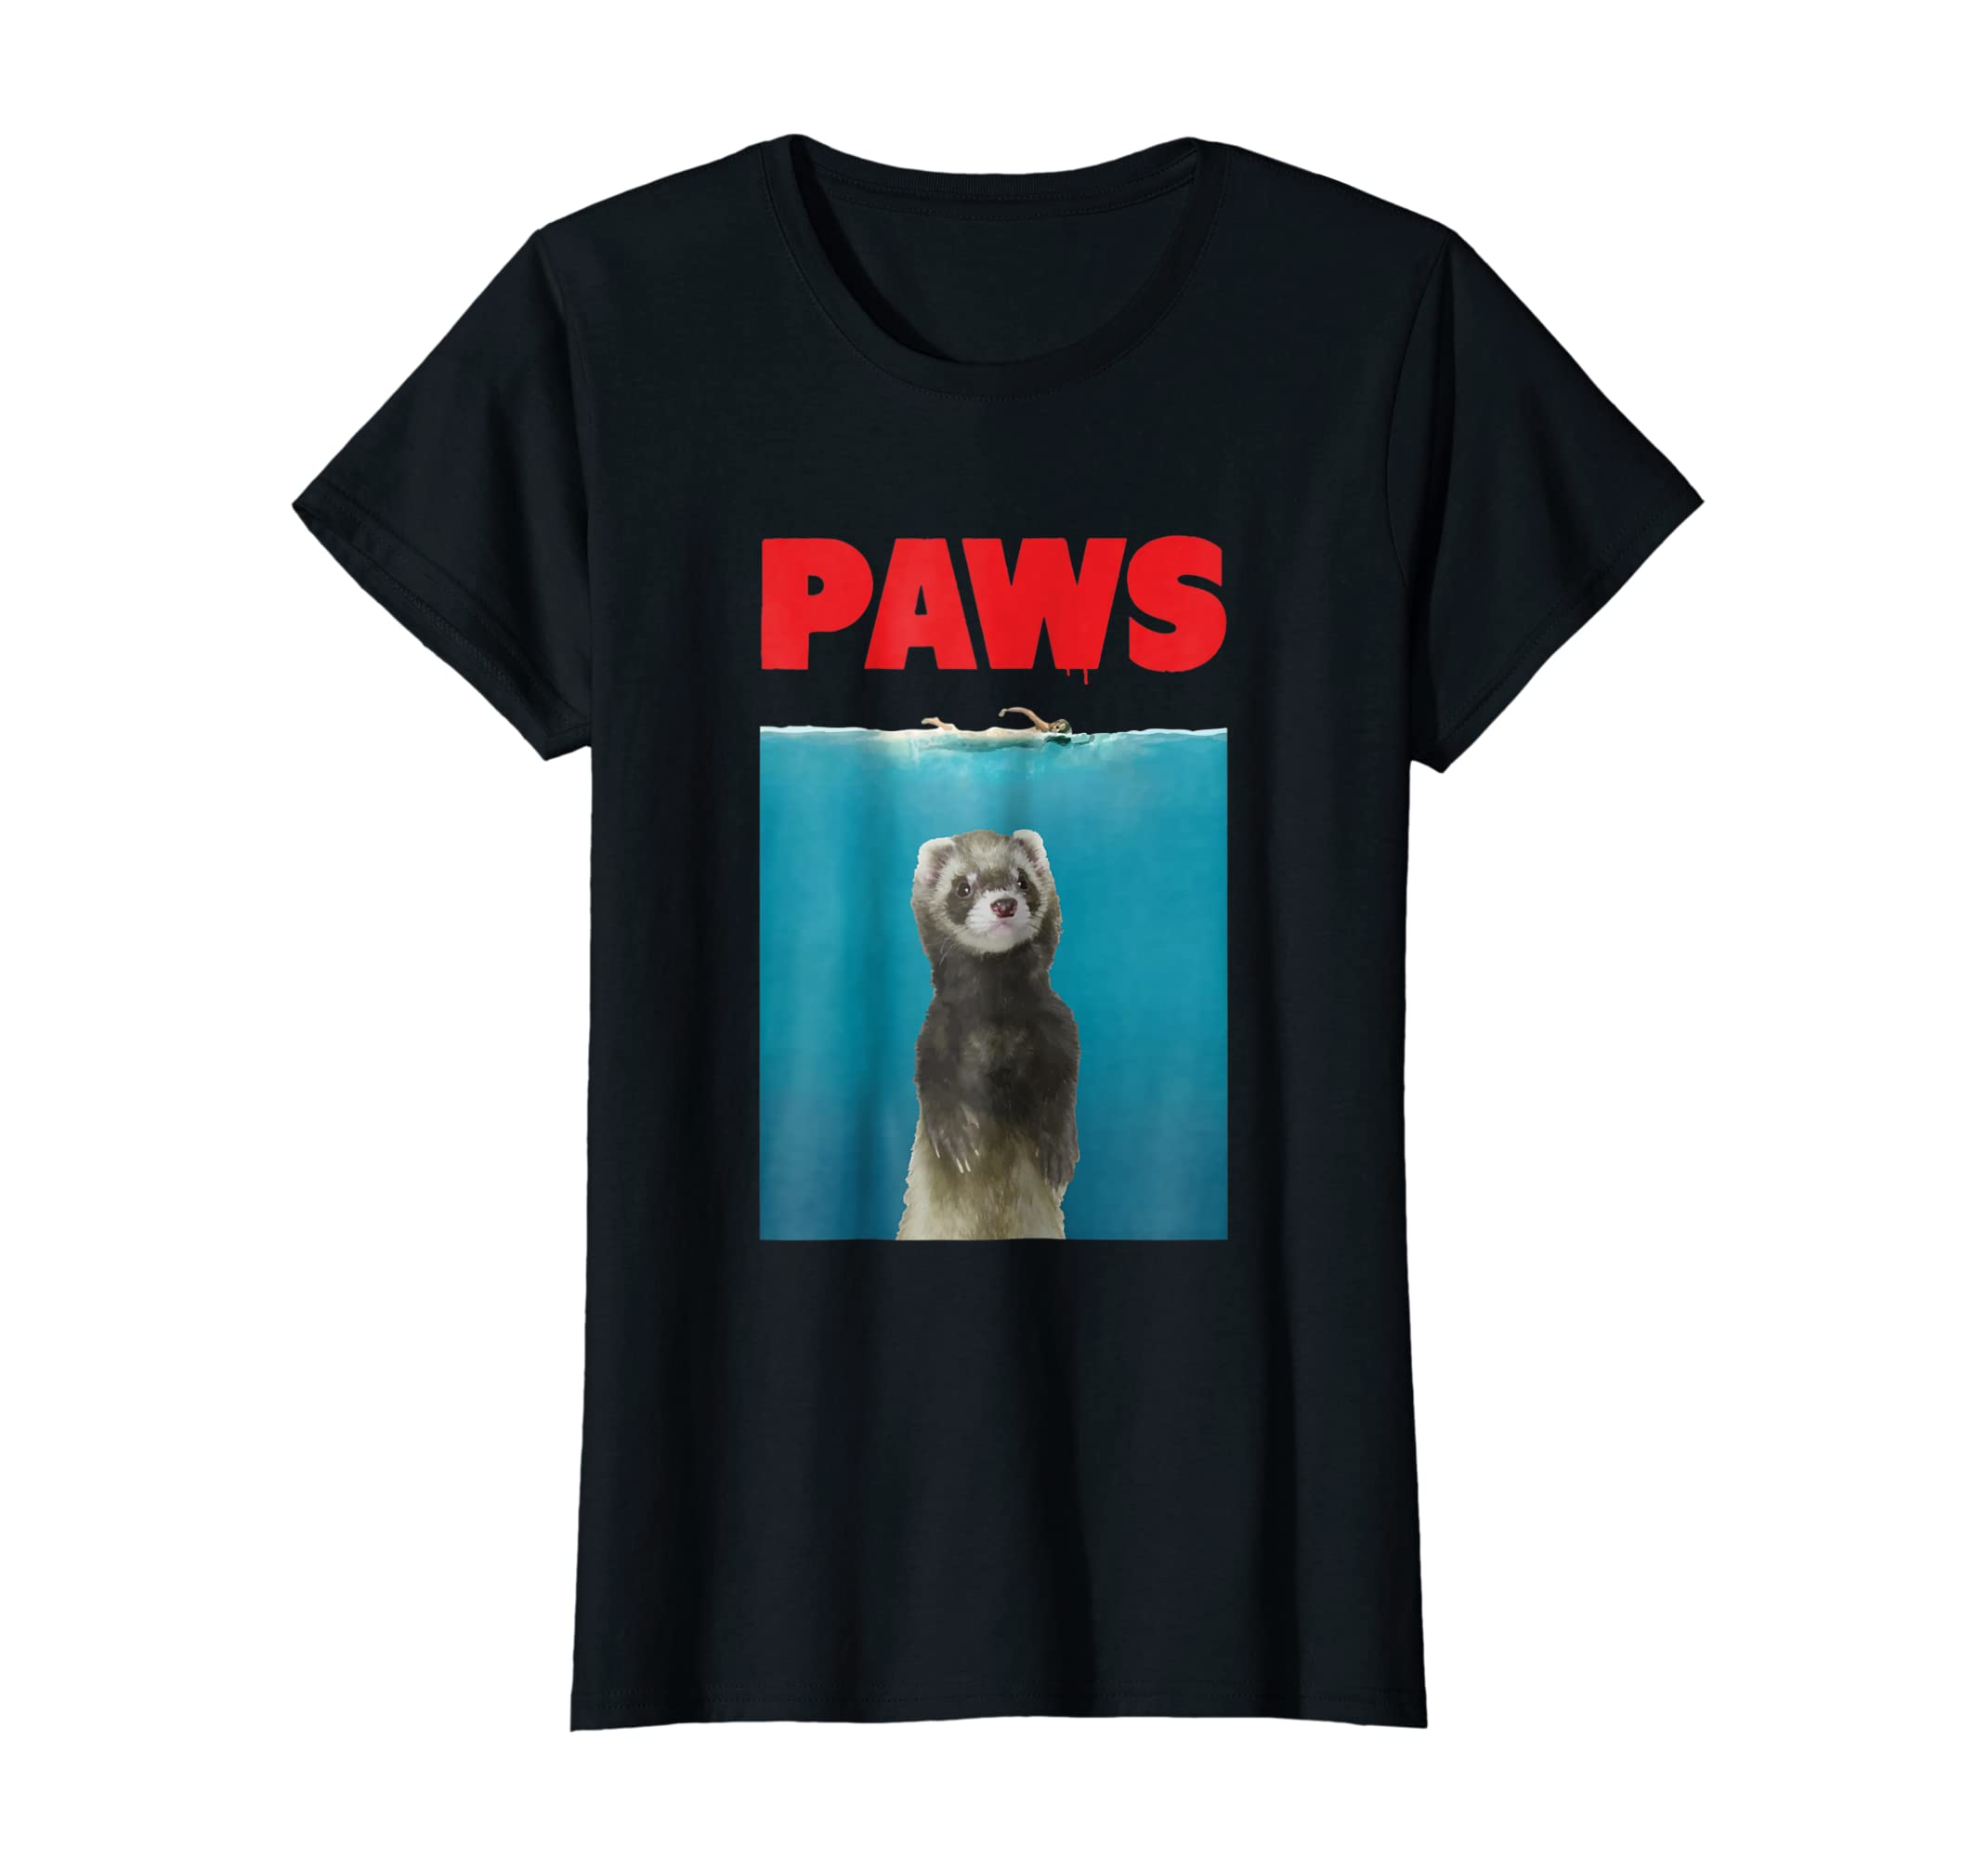 177f81040 Amazon.com: Paws Ferret Funny T-Shirt Parody | Ferret Lover Gifts: Clothing